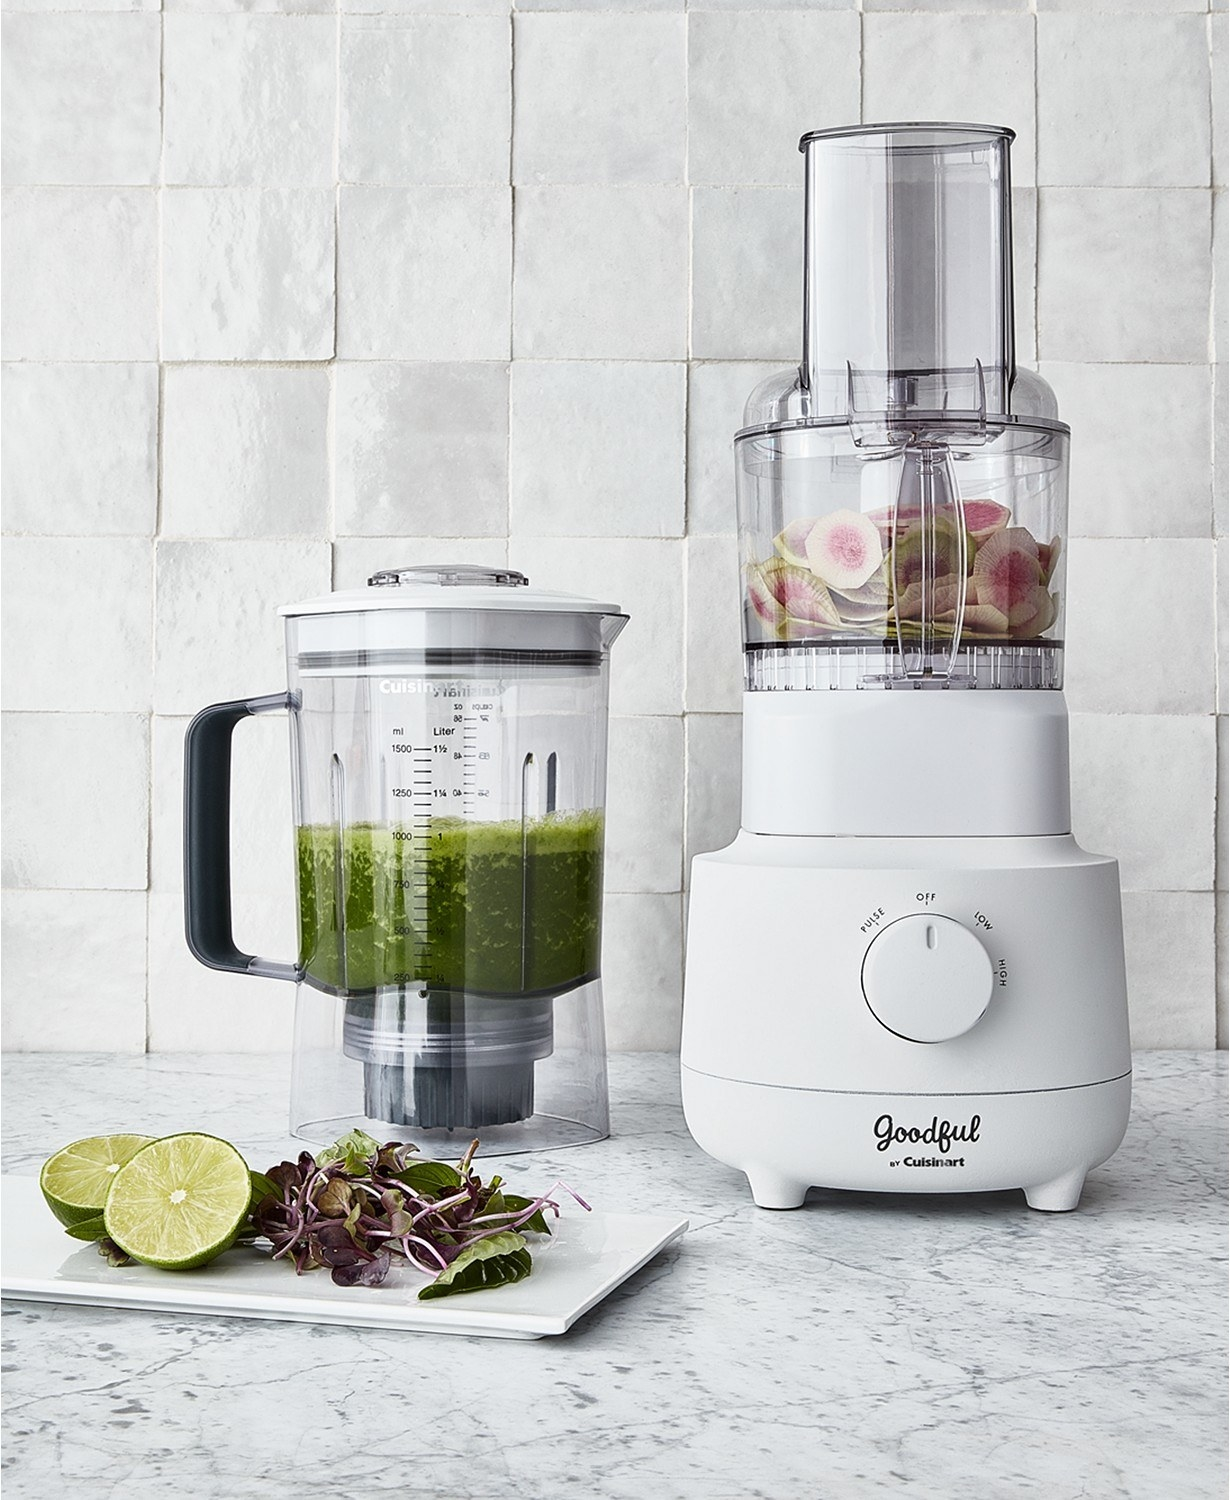 The Cuisinart blender and food processor